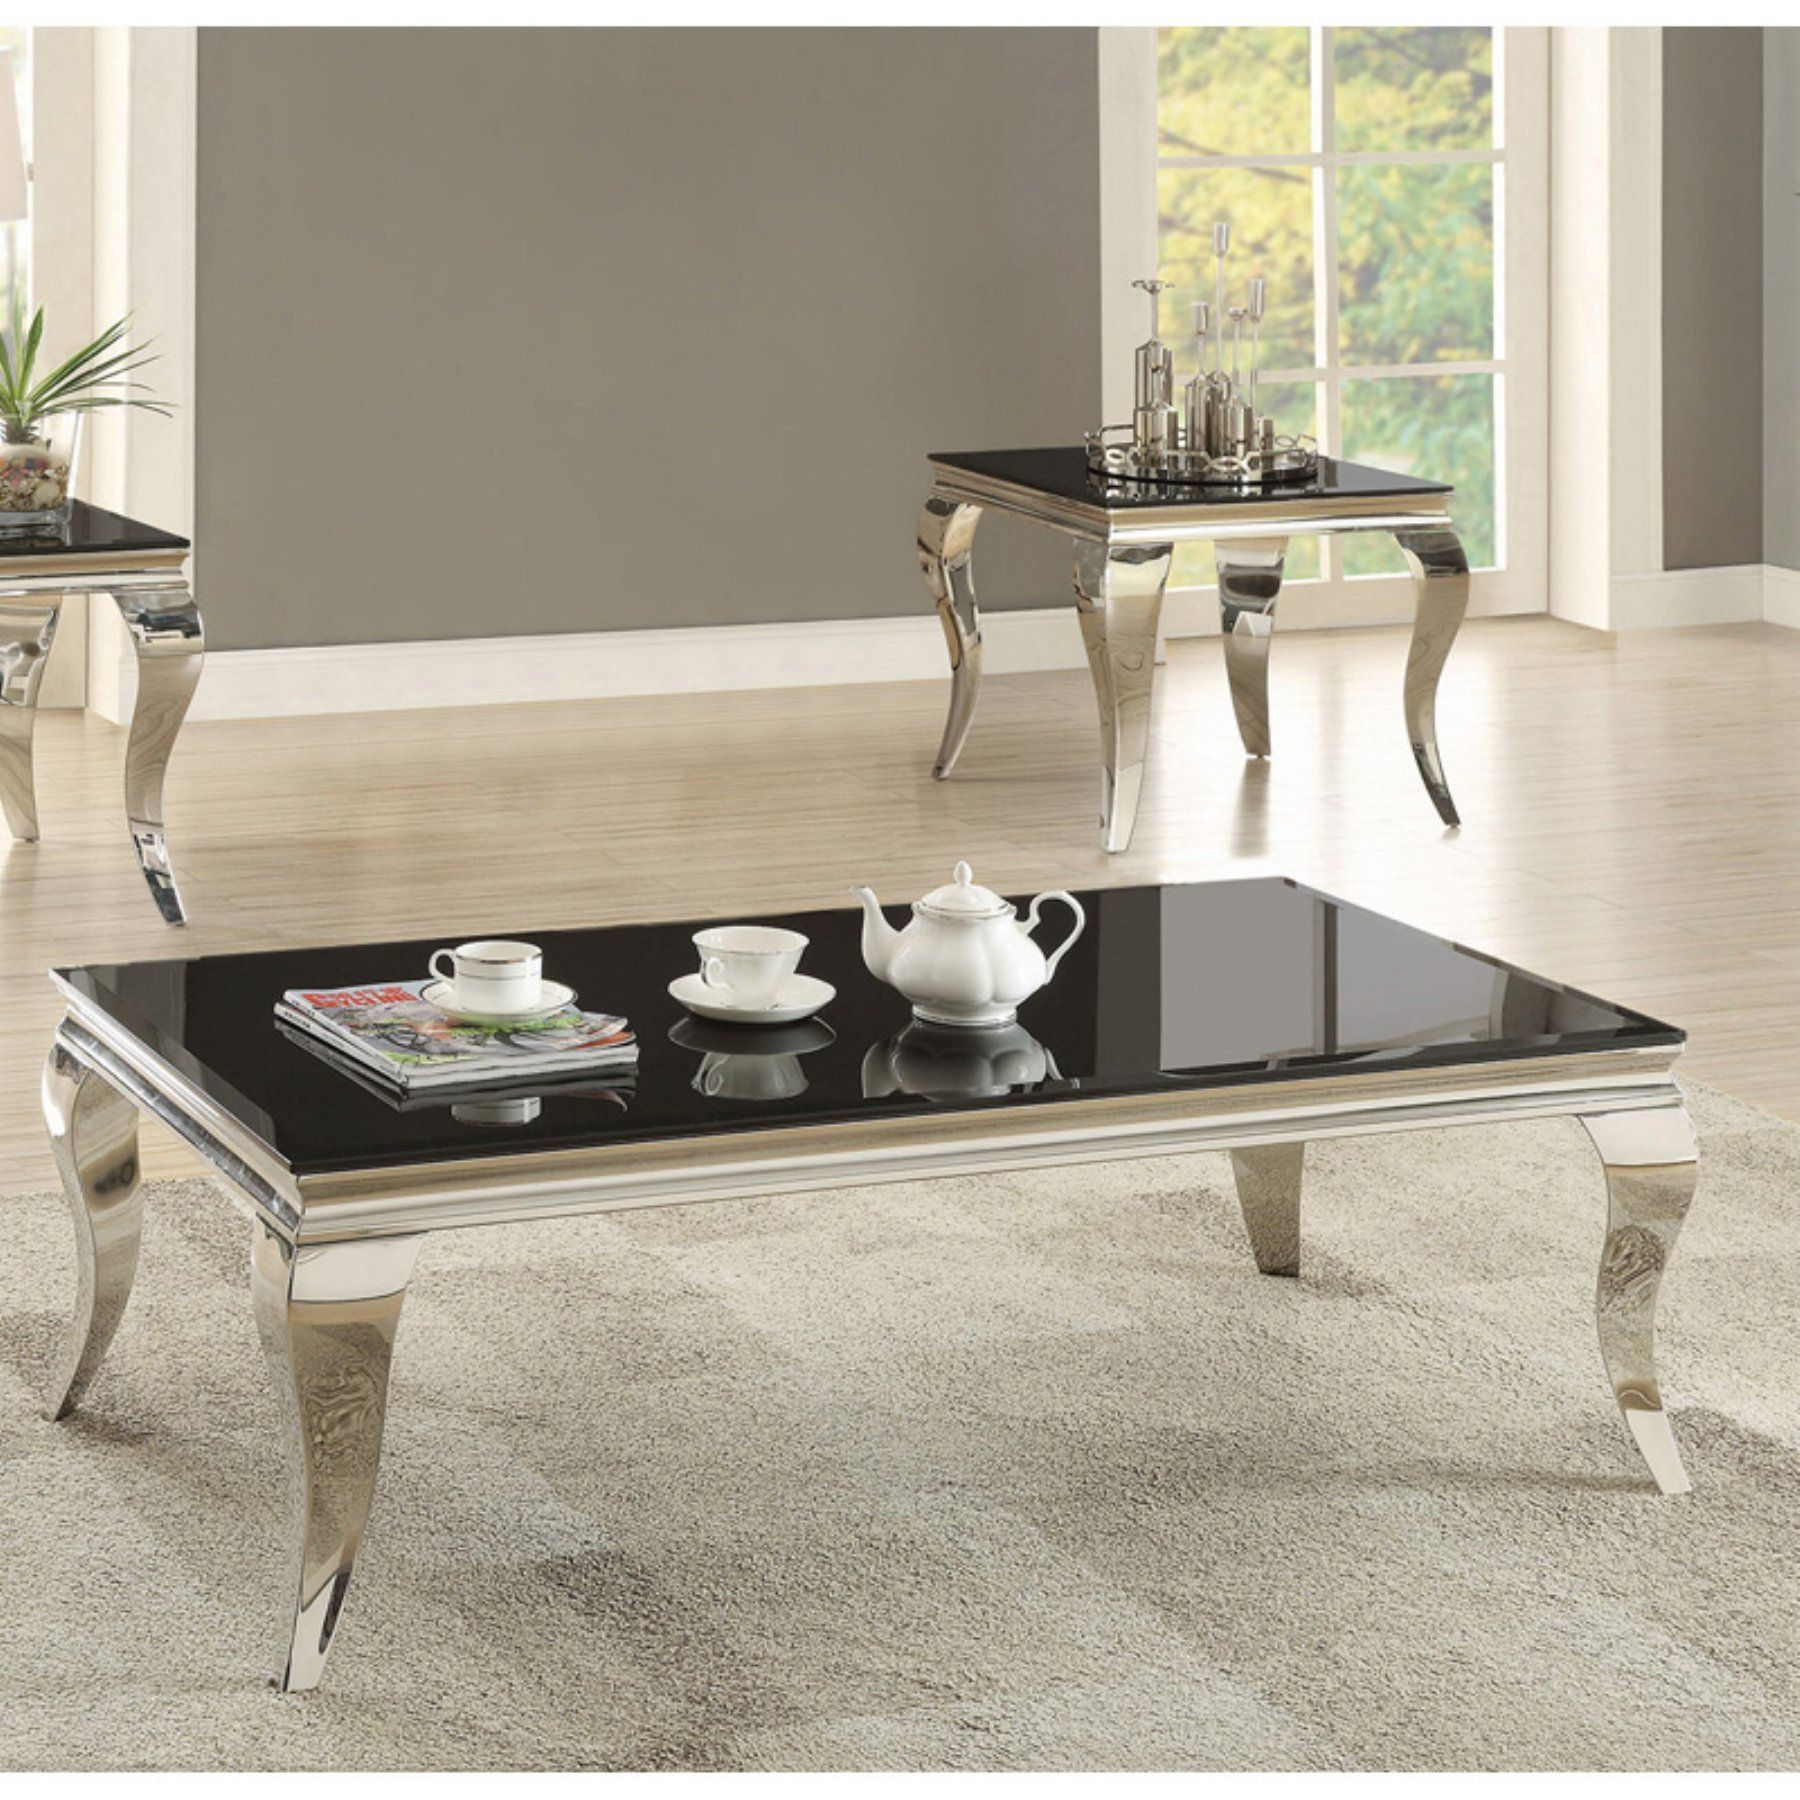 Sensational Coaster Furniture Black Glass Top Coffee Table With Chrome Andrewgaddart Wooden Chair Designs For Living Room Andrewgaddartcom